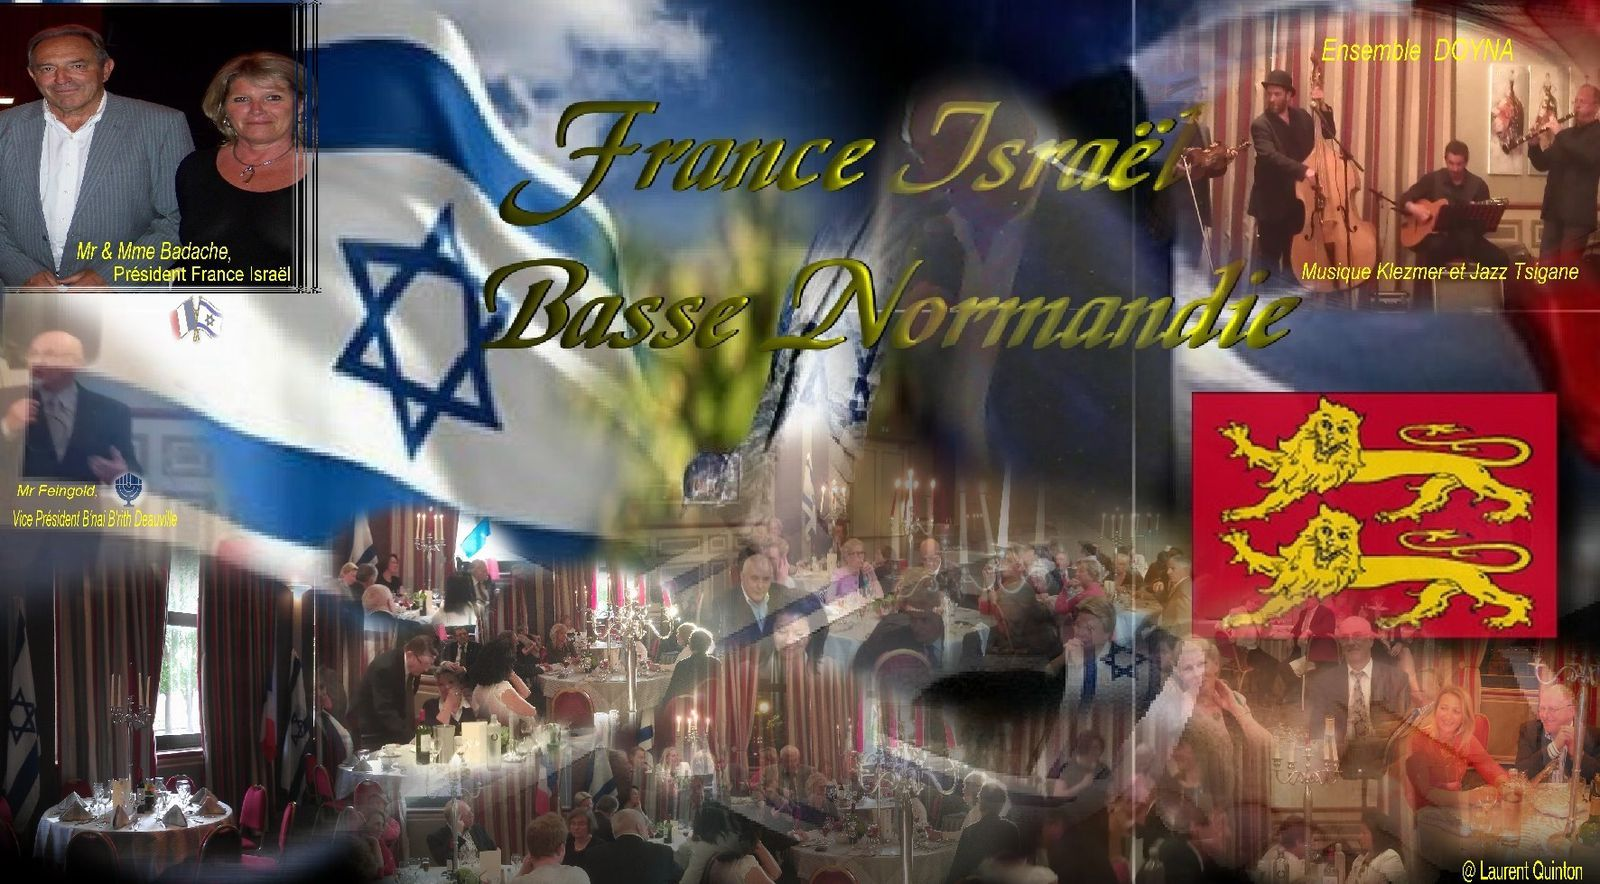 Soiree-France-Israel-Basse-Normandie-copie-1.jpg